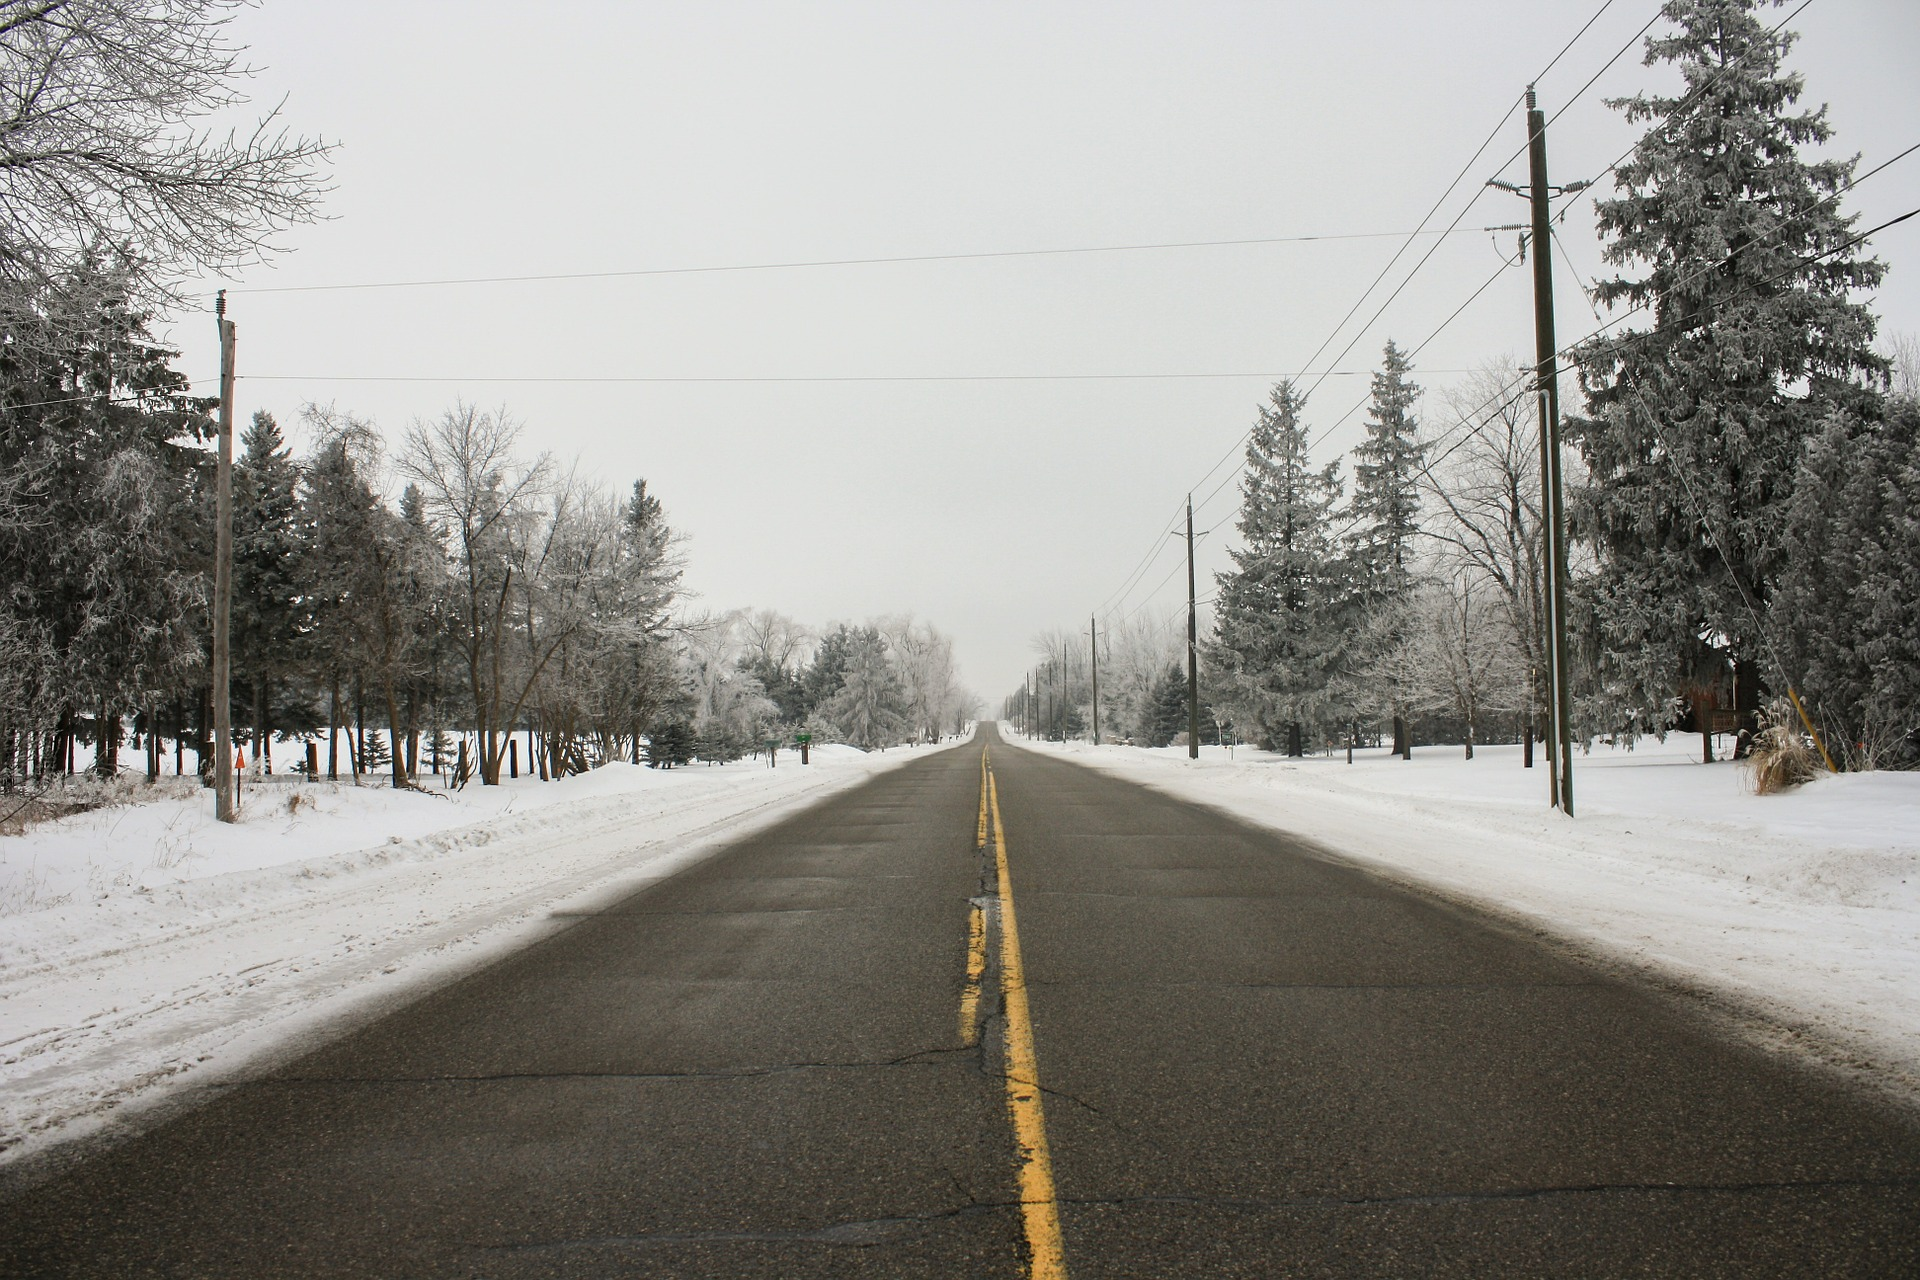 View of highway fringed by heavy snow.